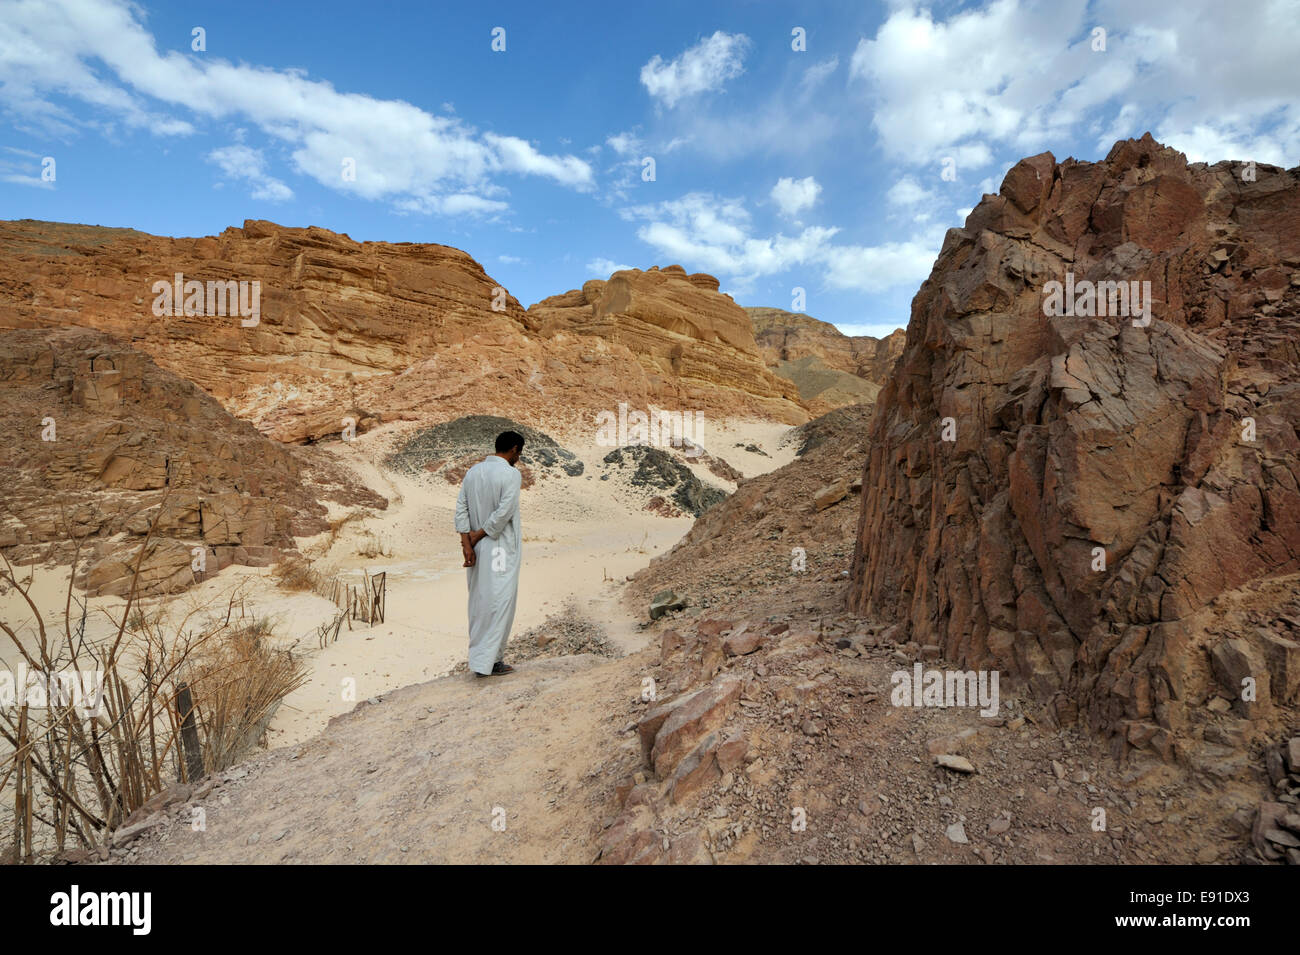 Bedouin Arab in contemplation walking along desert path at end of  White Canyon south Sinai near Ain Hudra Oasis - Stock Image